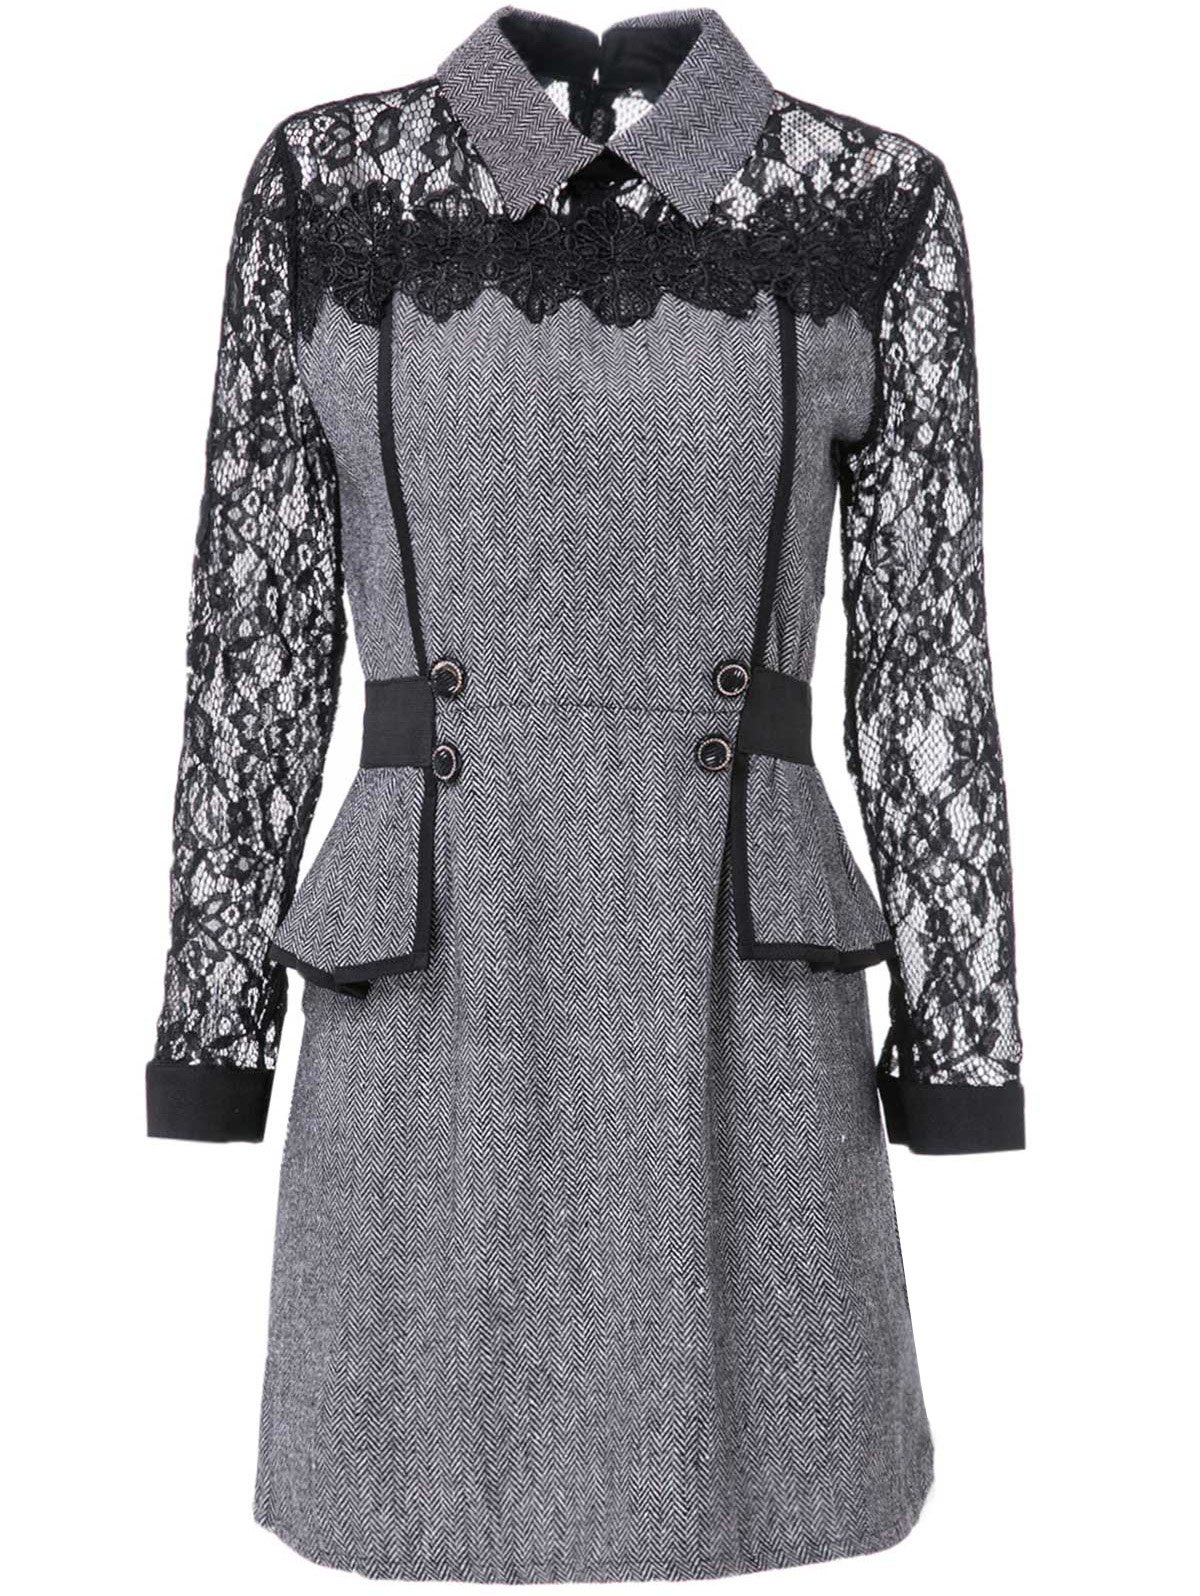 Chic Flat Collar Long Sleeve Flounced Lace Design Women's Dress - GRAY M